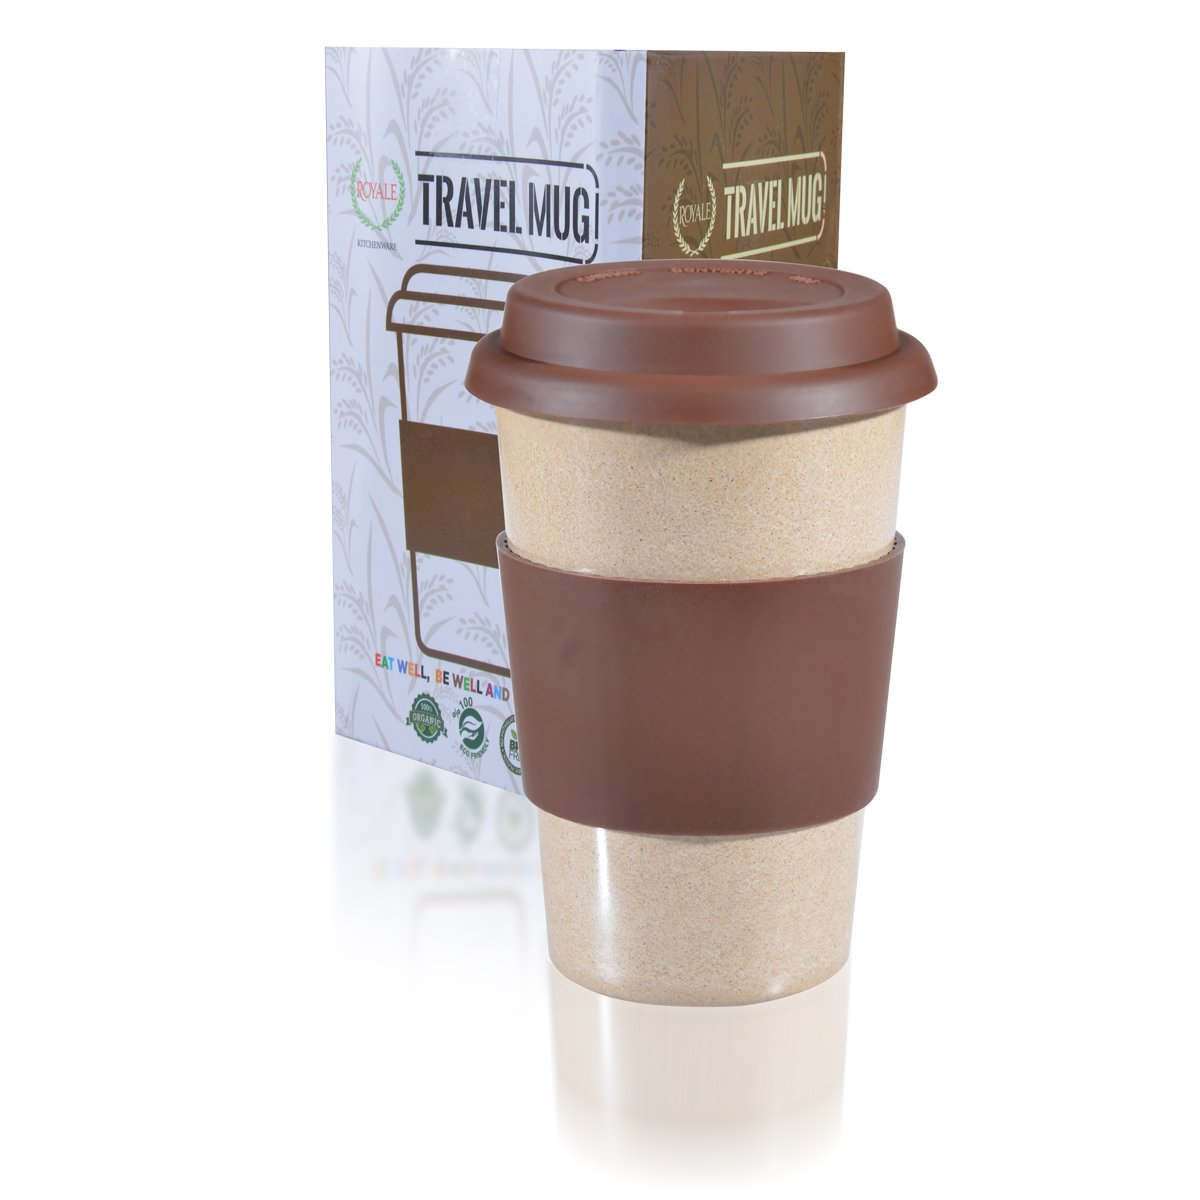 16oz Reusable To Go Chocolate Travel Mug Leak proof with Lid /& Heat Resistant Non slip Grip Made with 100/% Organic Eco friendly Biodegradable Material FDA approved BPA free.